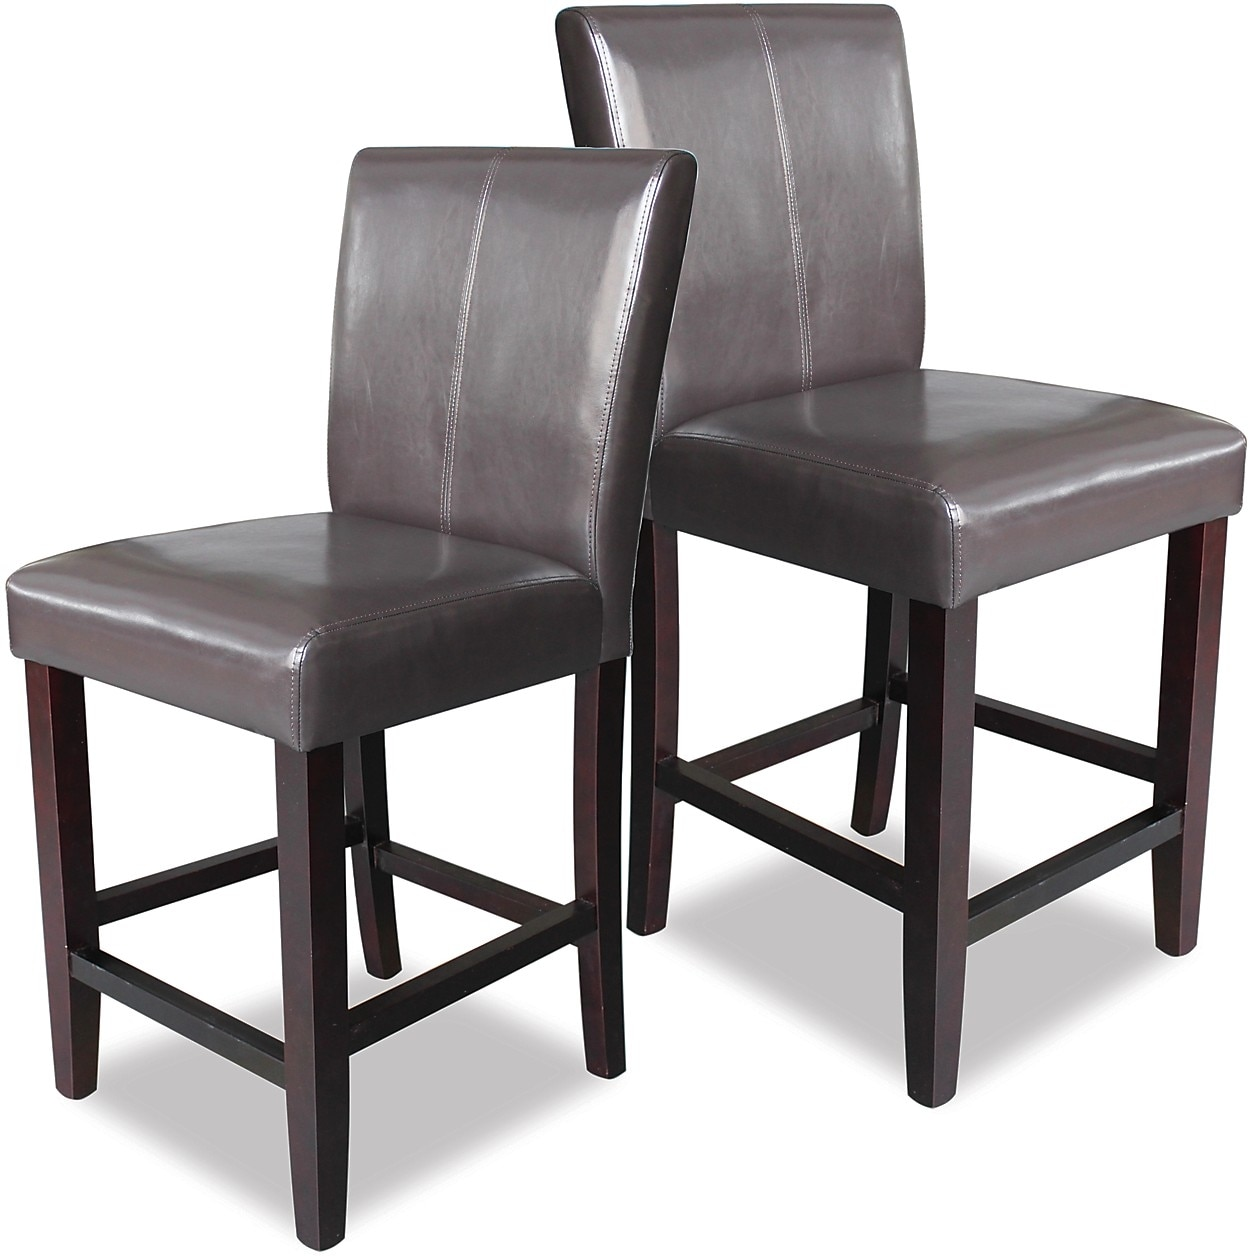 Dining Room Furniture - Kendall Brown Accent Counter Chairs, Set of 2